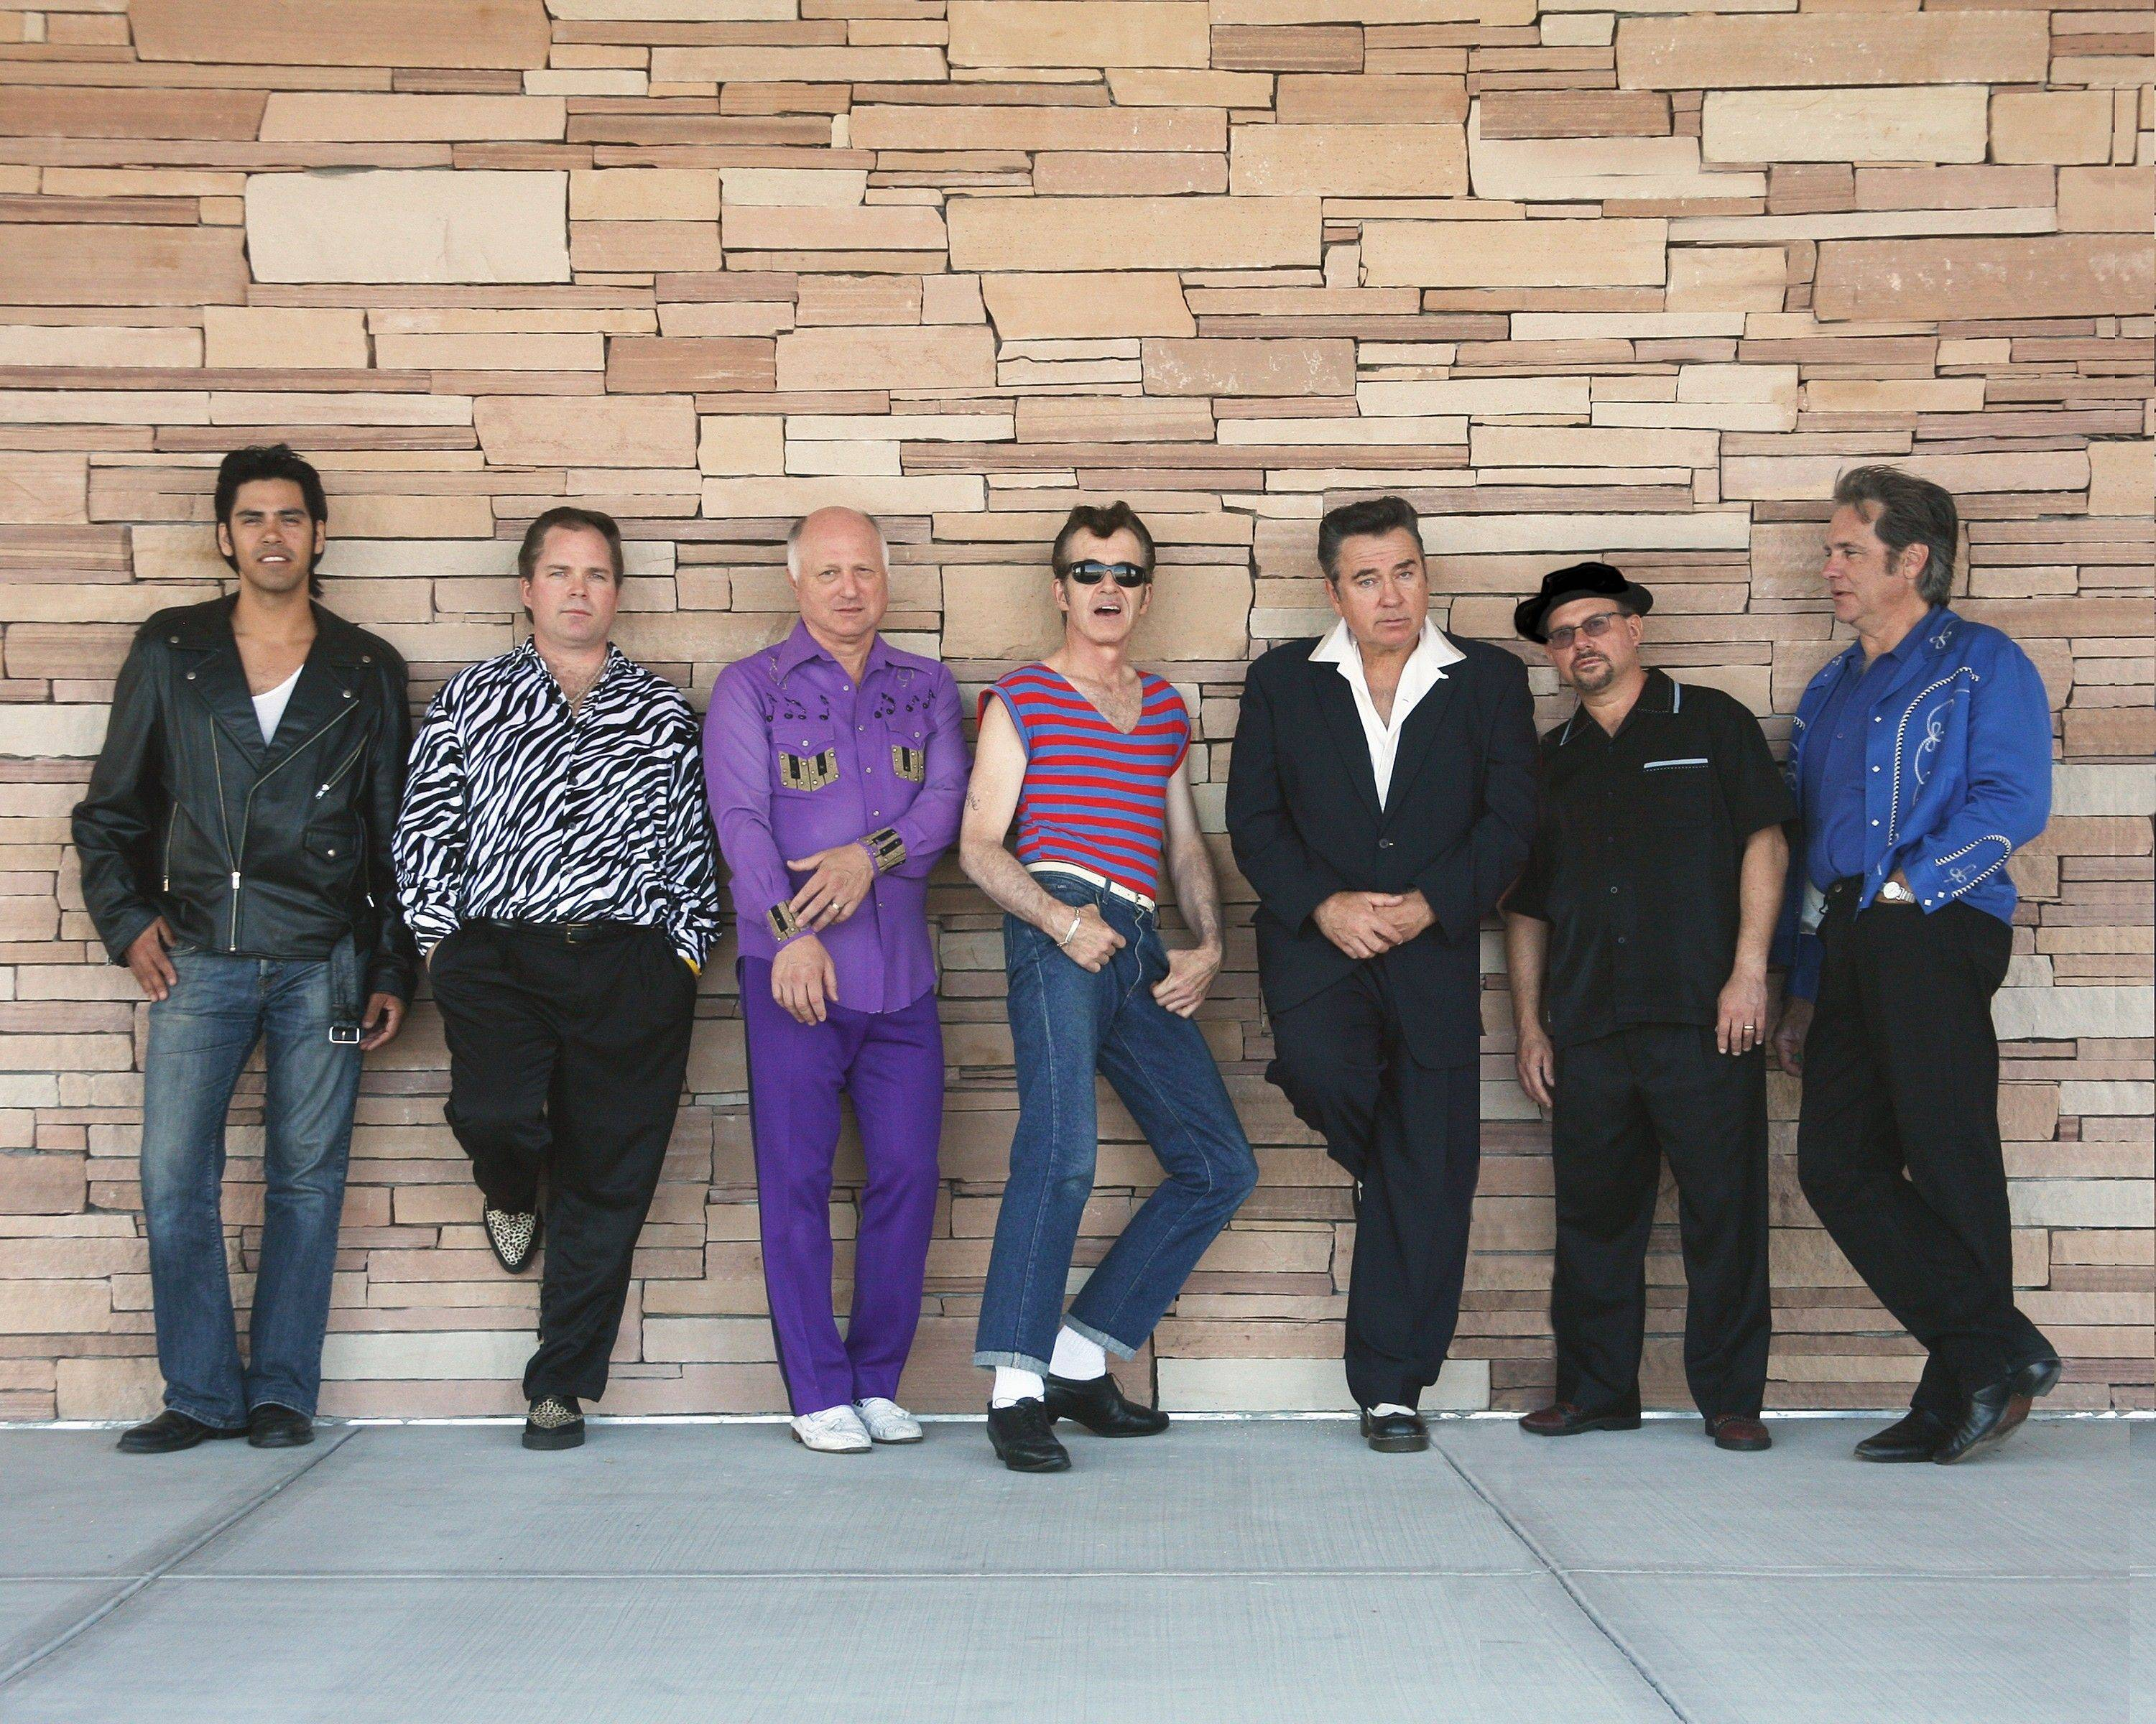 Travel back in time to the '50s when Sha Na Na headlines the Viper Alley in Lincolnshire Friday.